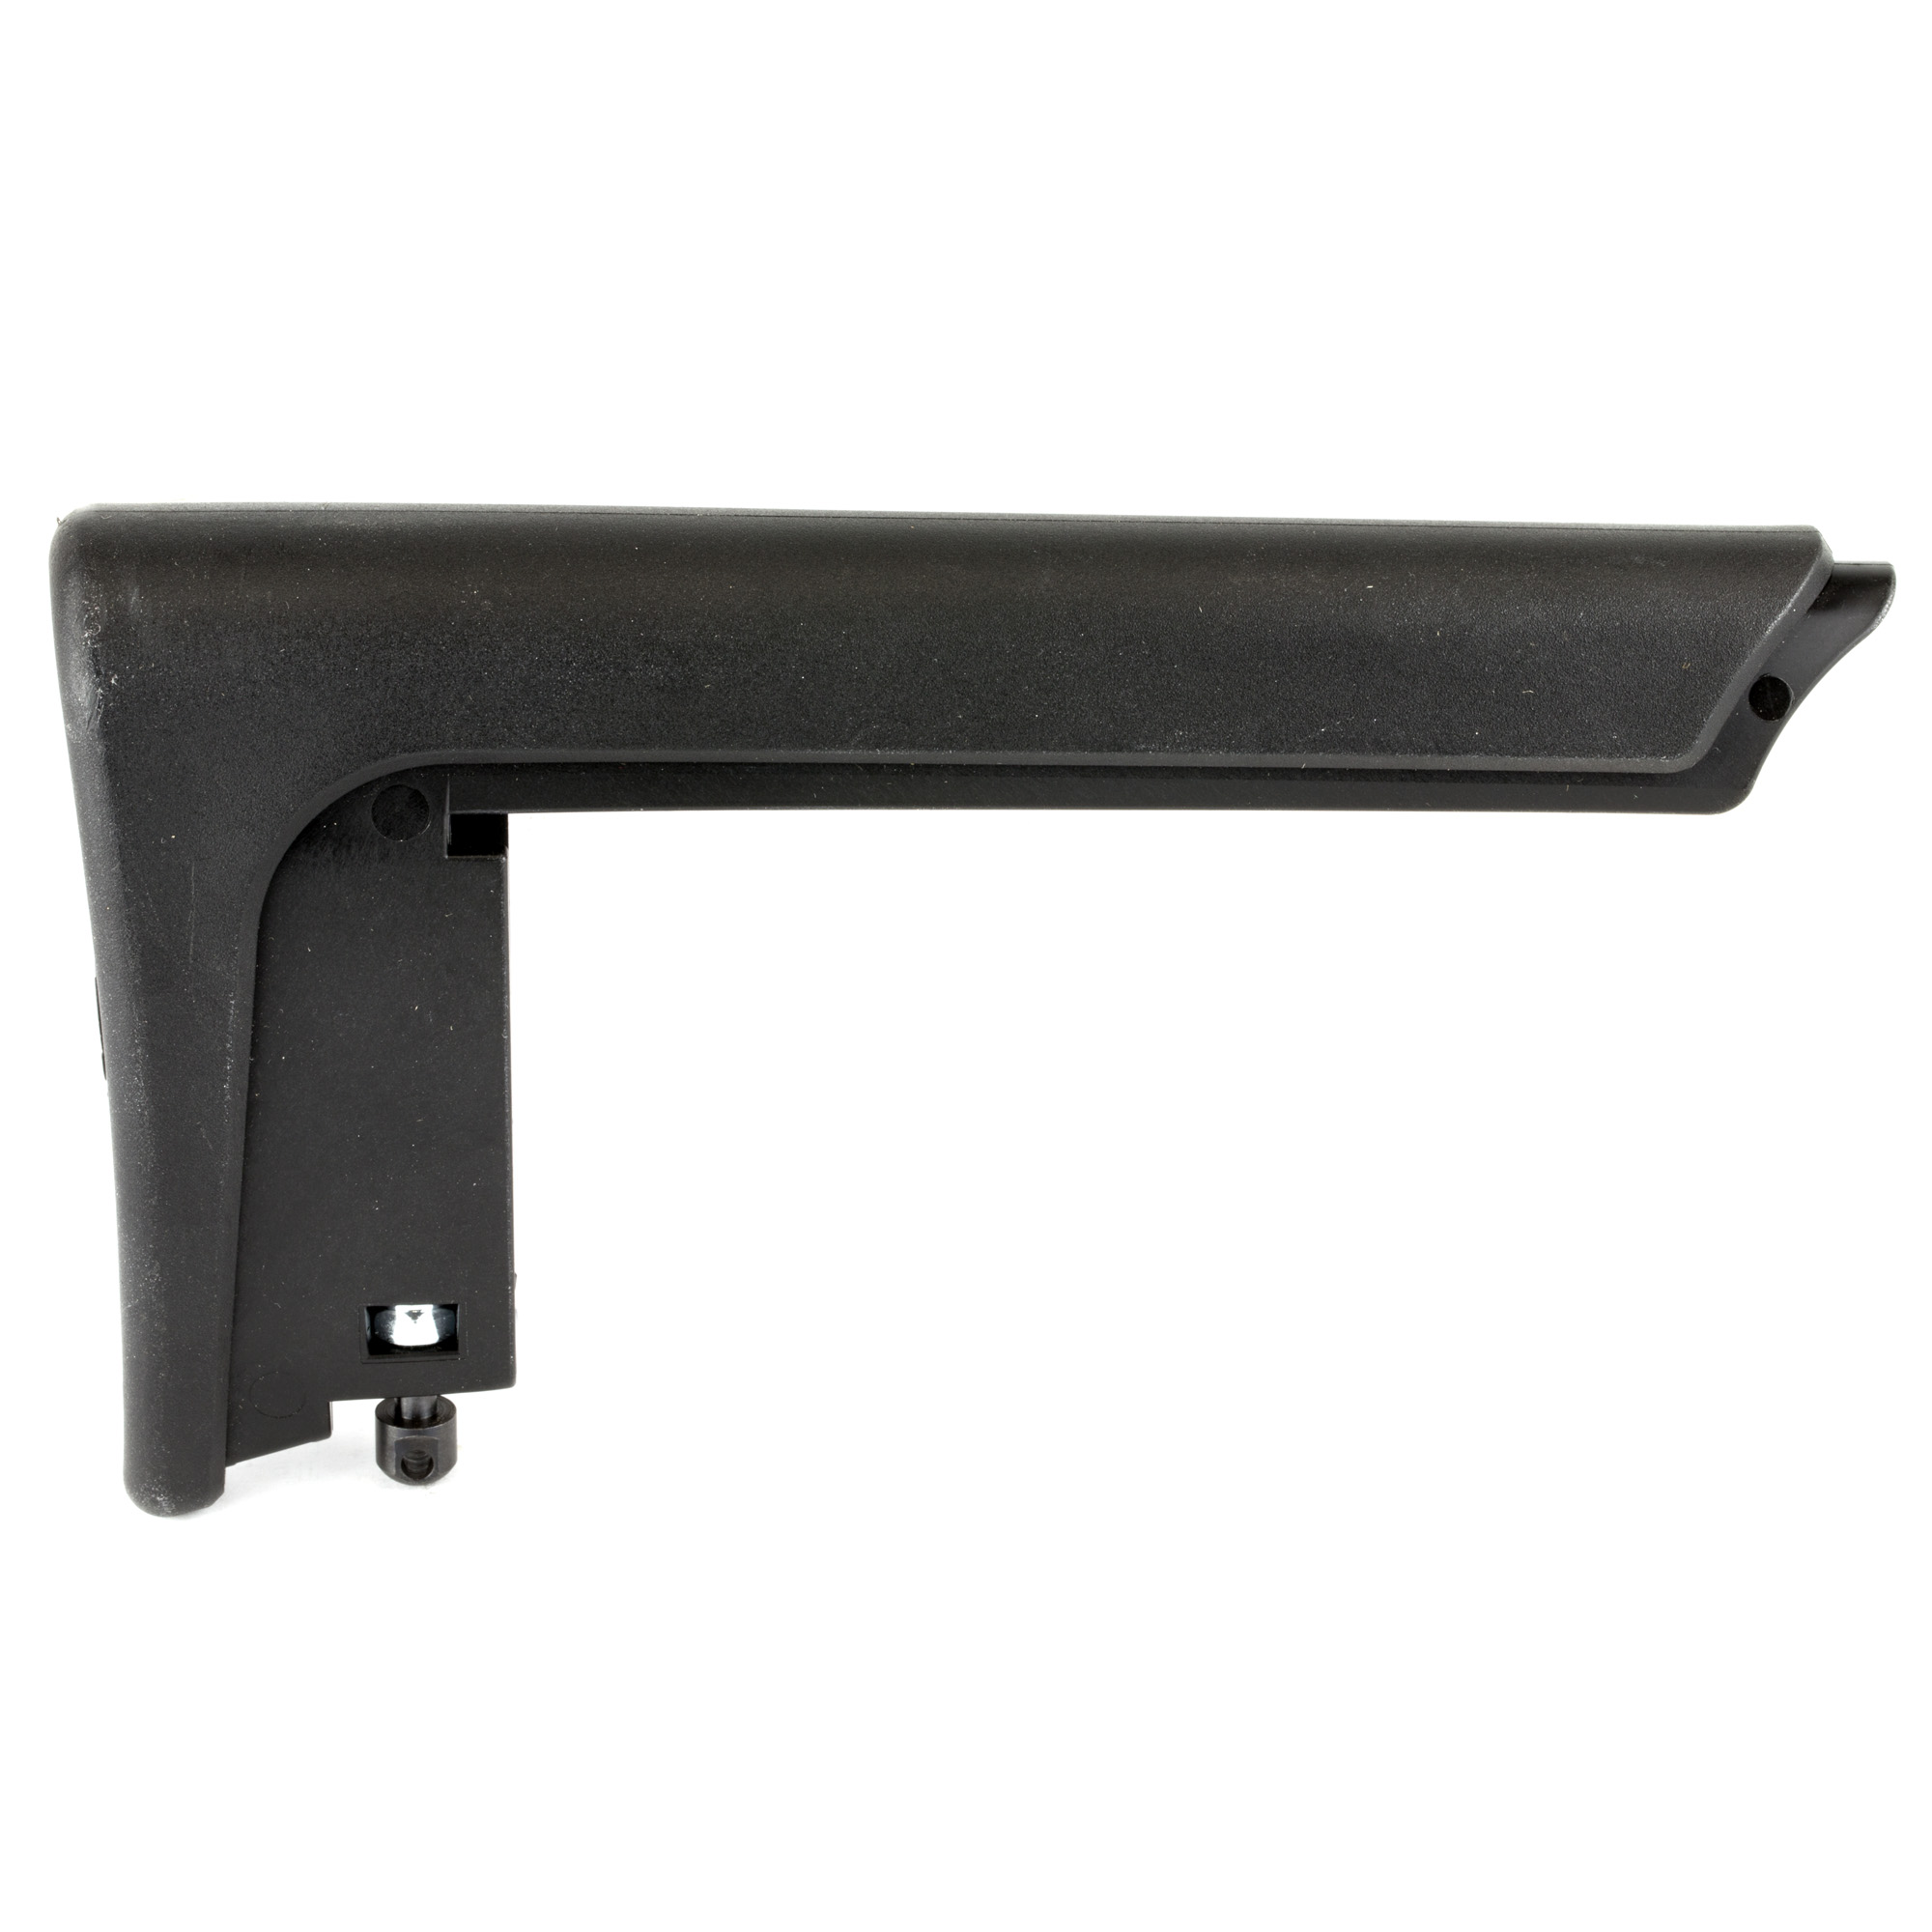 "Ruger's Stock Module"" Low Comb/Compact Pull"" fits Ruger American Rimfire"" 10/22 and any Ruger rifle with the Modular Stock System. This comb is intended for use with standard iron sights. The low comb height allows for the ideal placement of the shooter's cheek"" in line with the sights. It has the shorter length of pull buttstock"" ideal for shooters that prefer a shorter length of pull. Fits any Ruger(R) rifle with the Modular Stock System. Genuine Ruger(R) Factory Accessory."